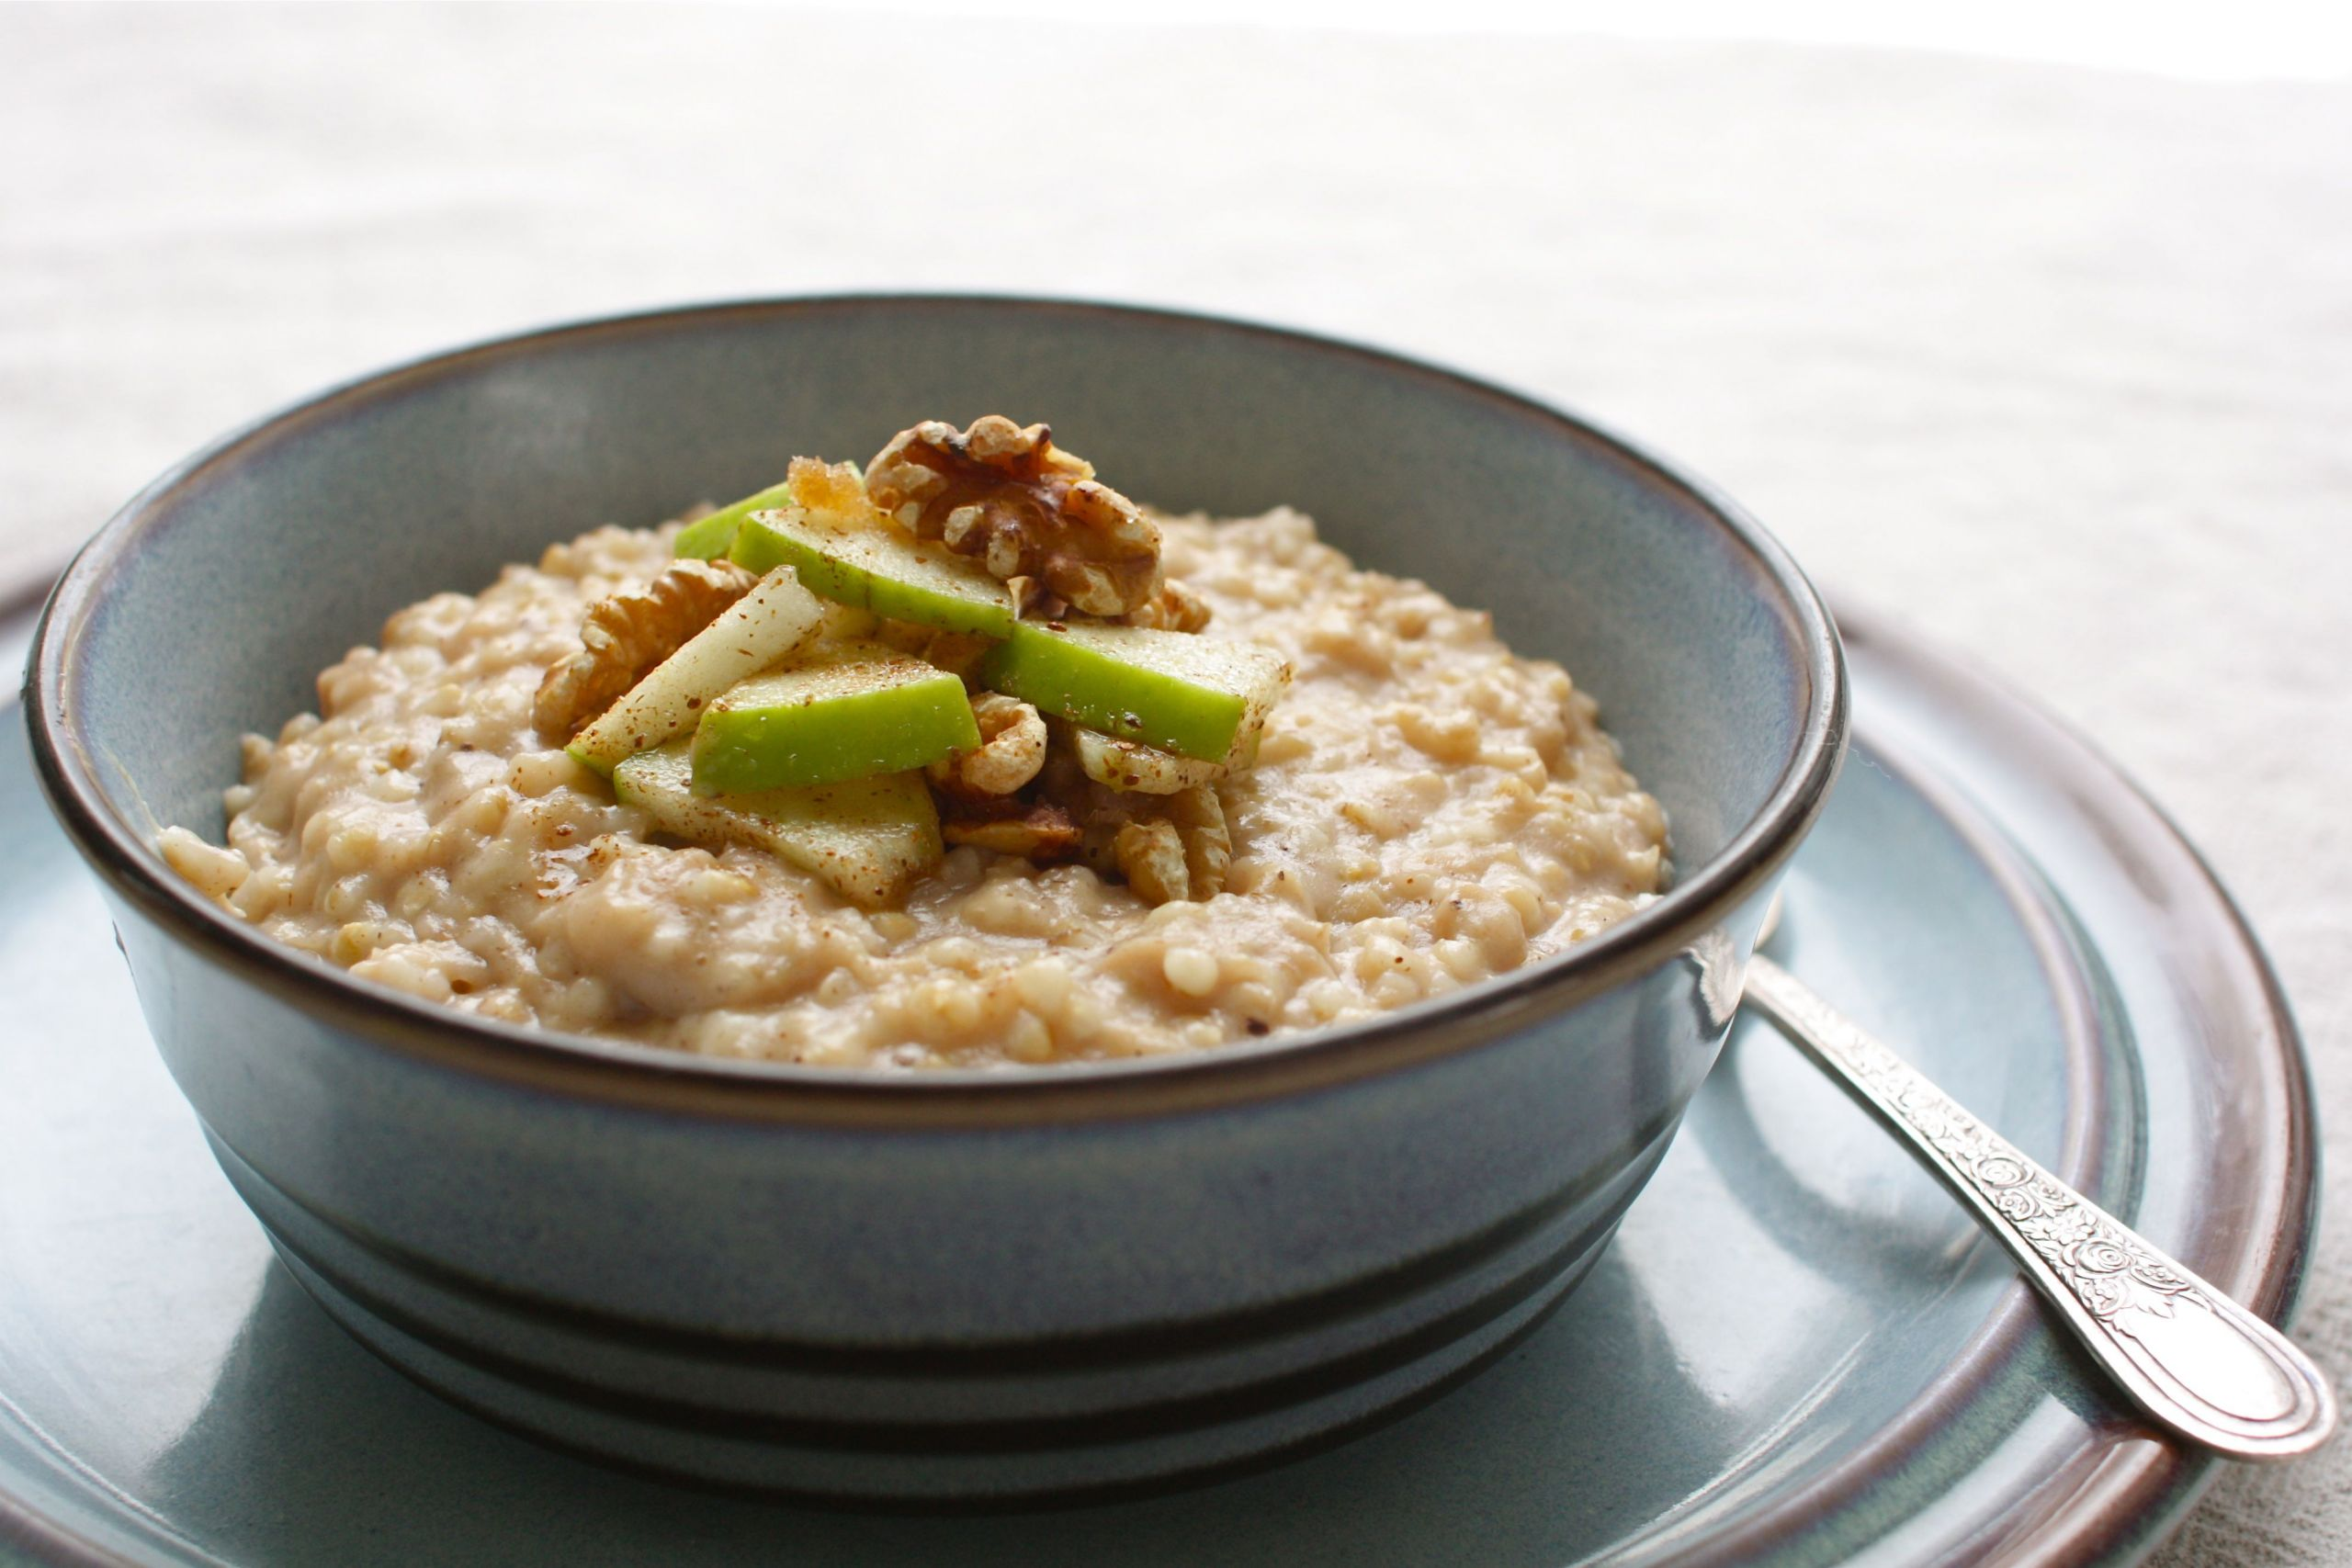 Steel Cuts Oats In Slow Cooker  How to Cook Apple Pie Steel Cut Oats in a Slow Cooker